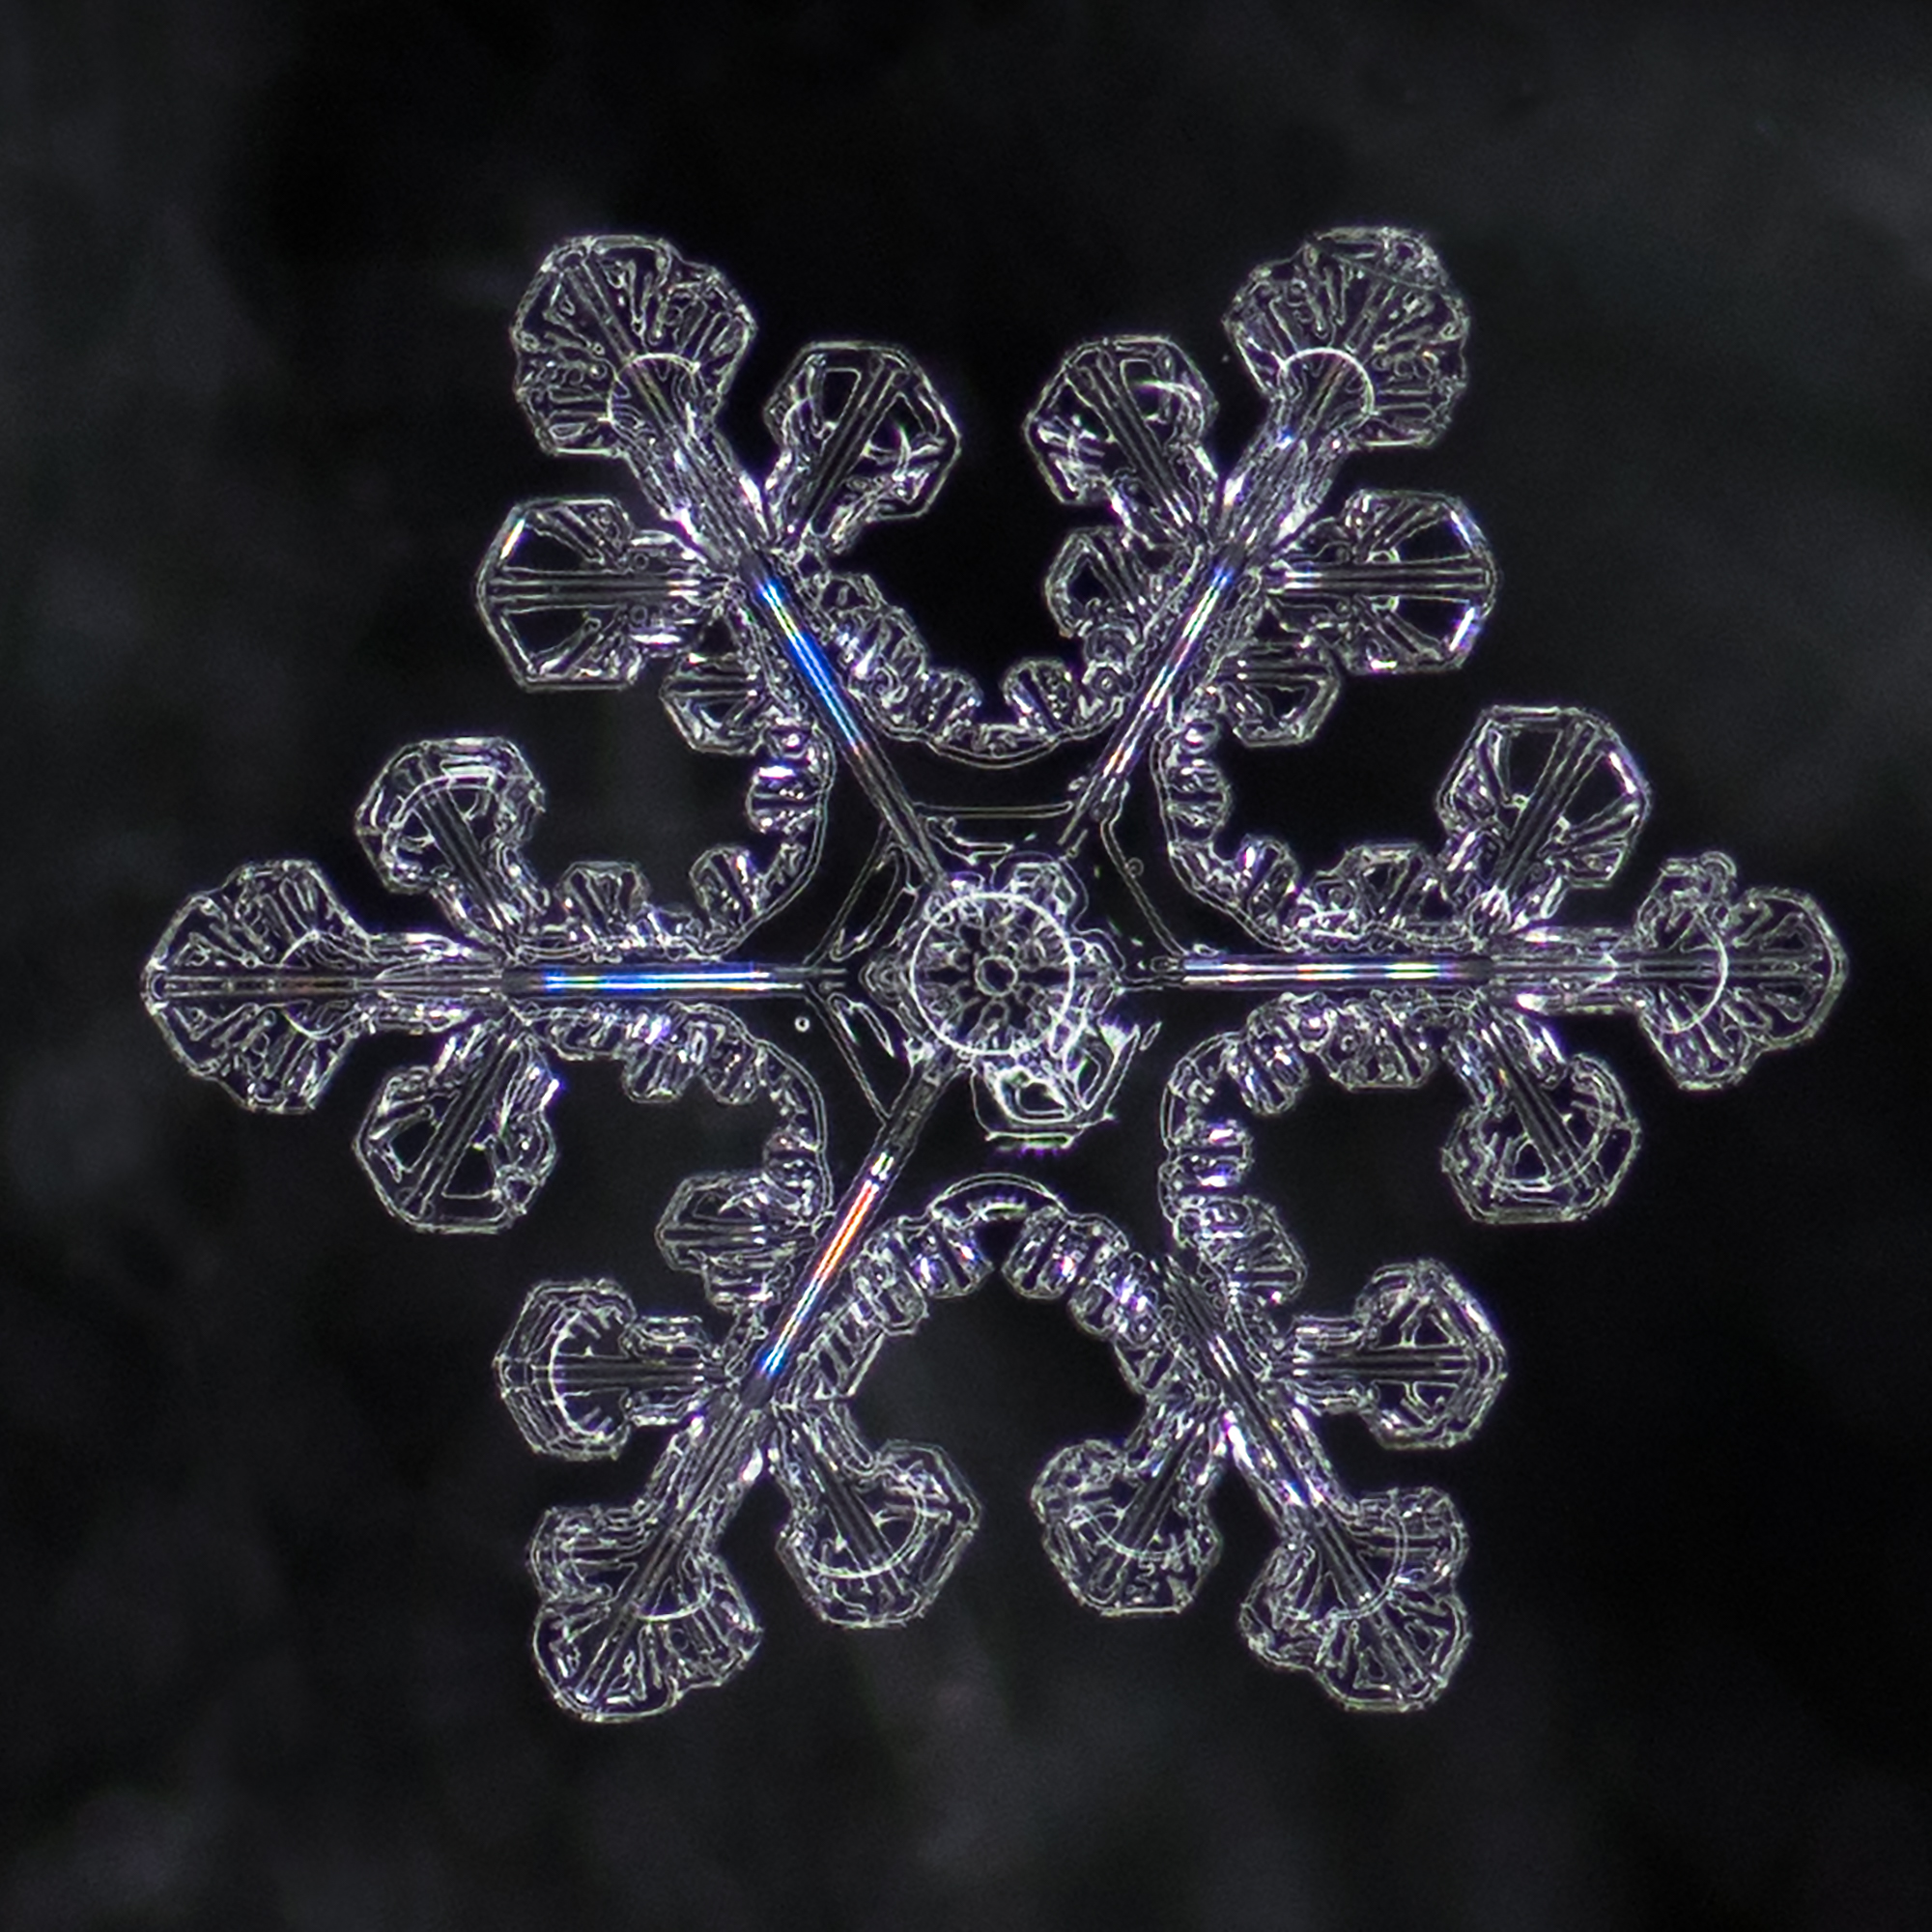 snowflake photography sample-8.jpg